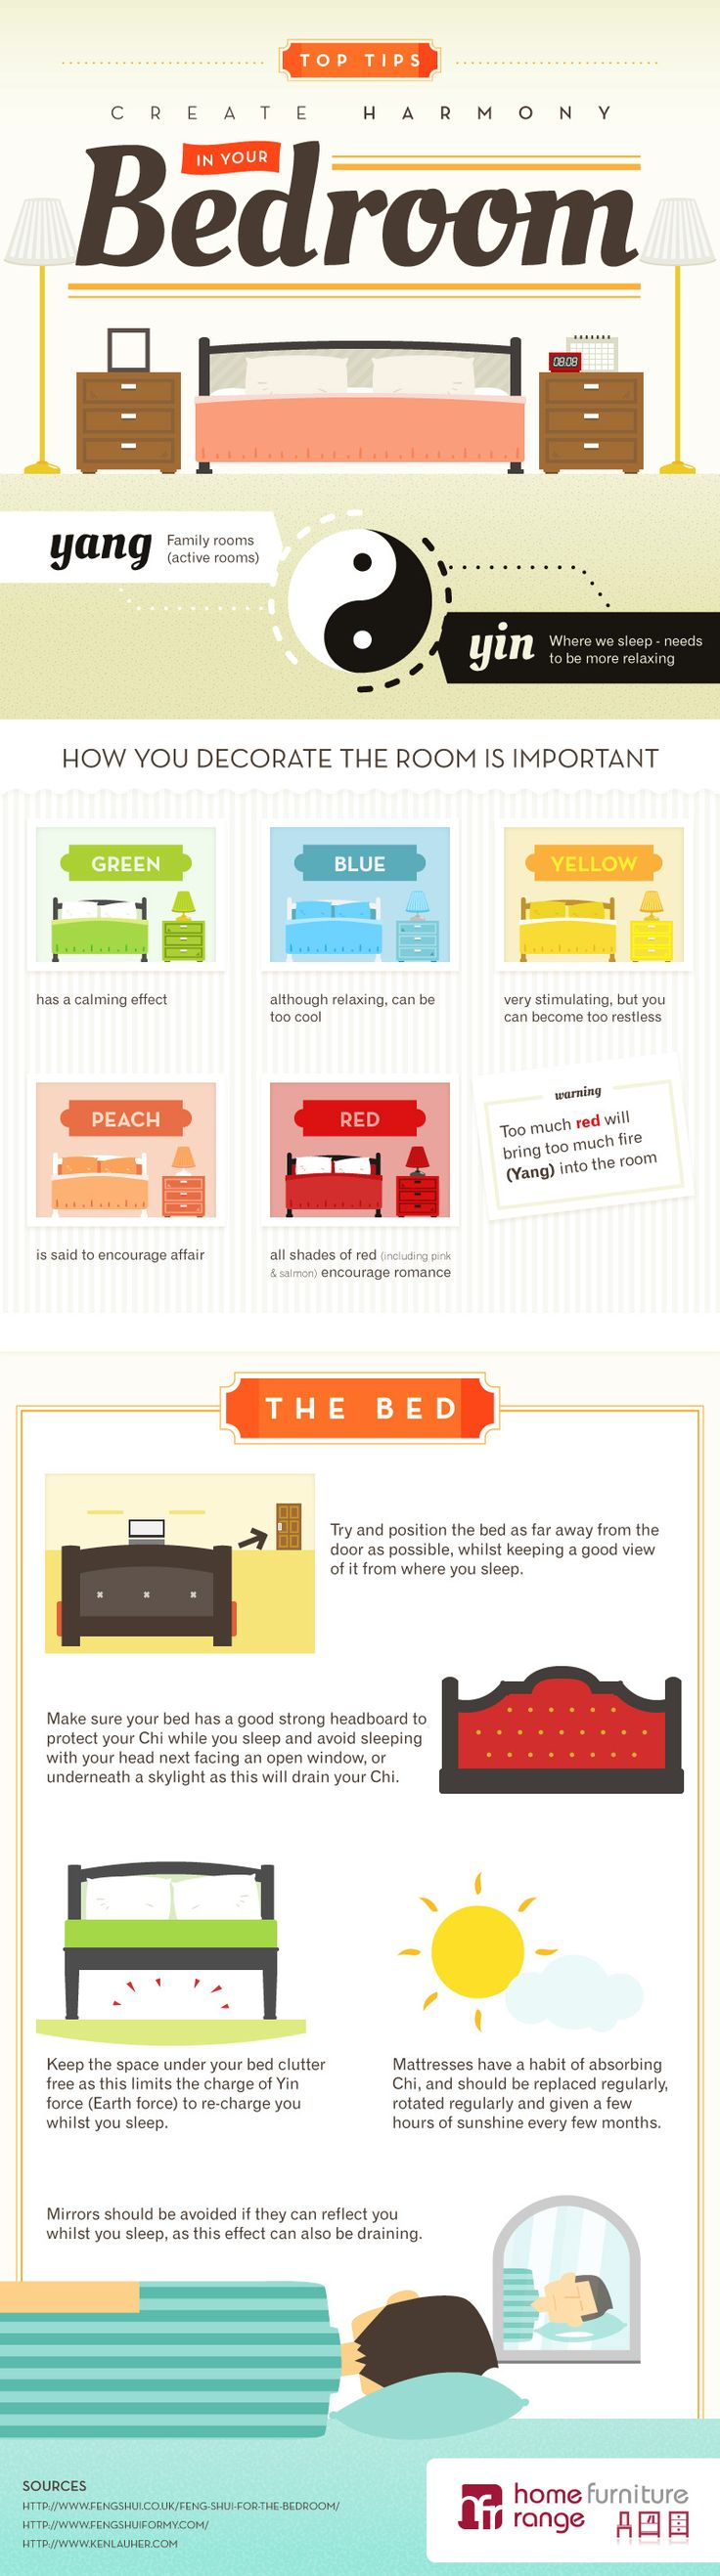 tips to feng shui in your bedroom feng shui bedroomdecor ideas - Feng Shui Bedroom Decorating Ideas